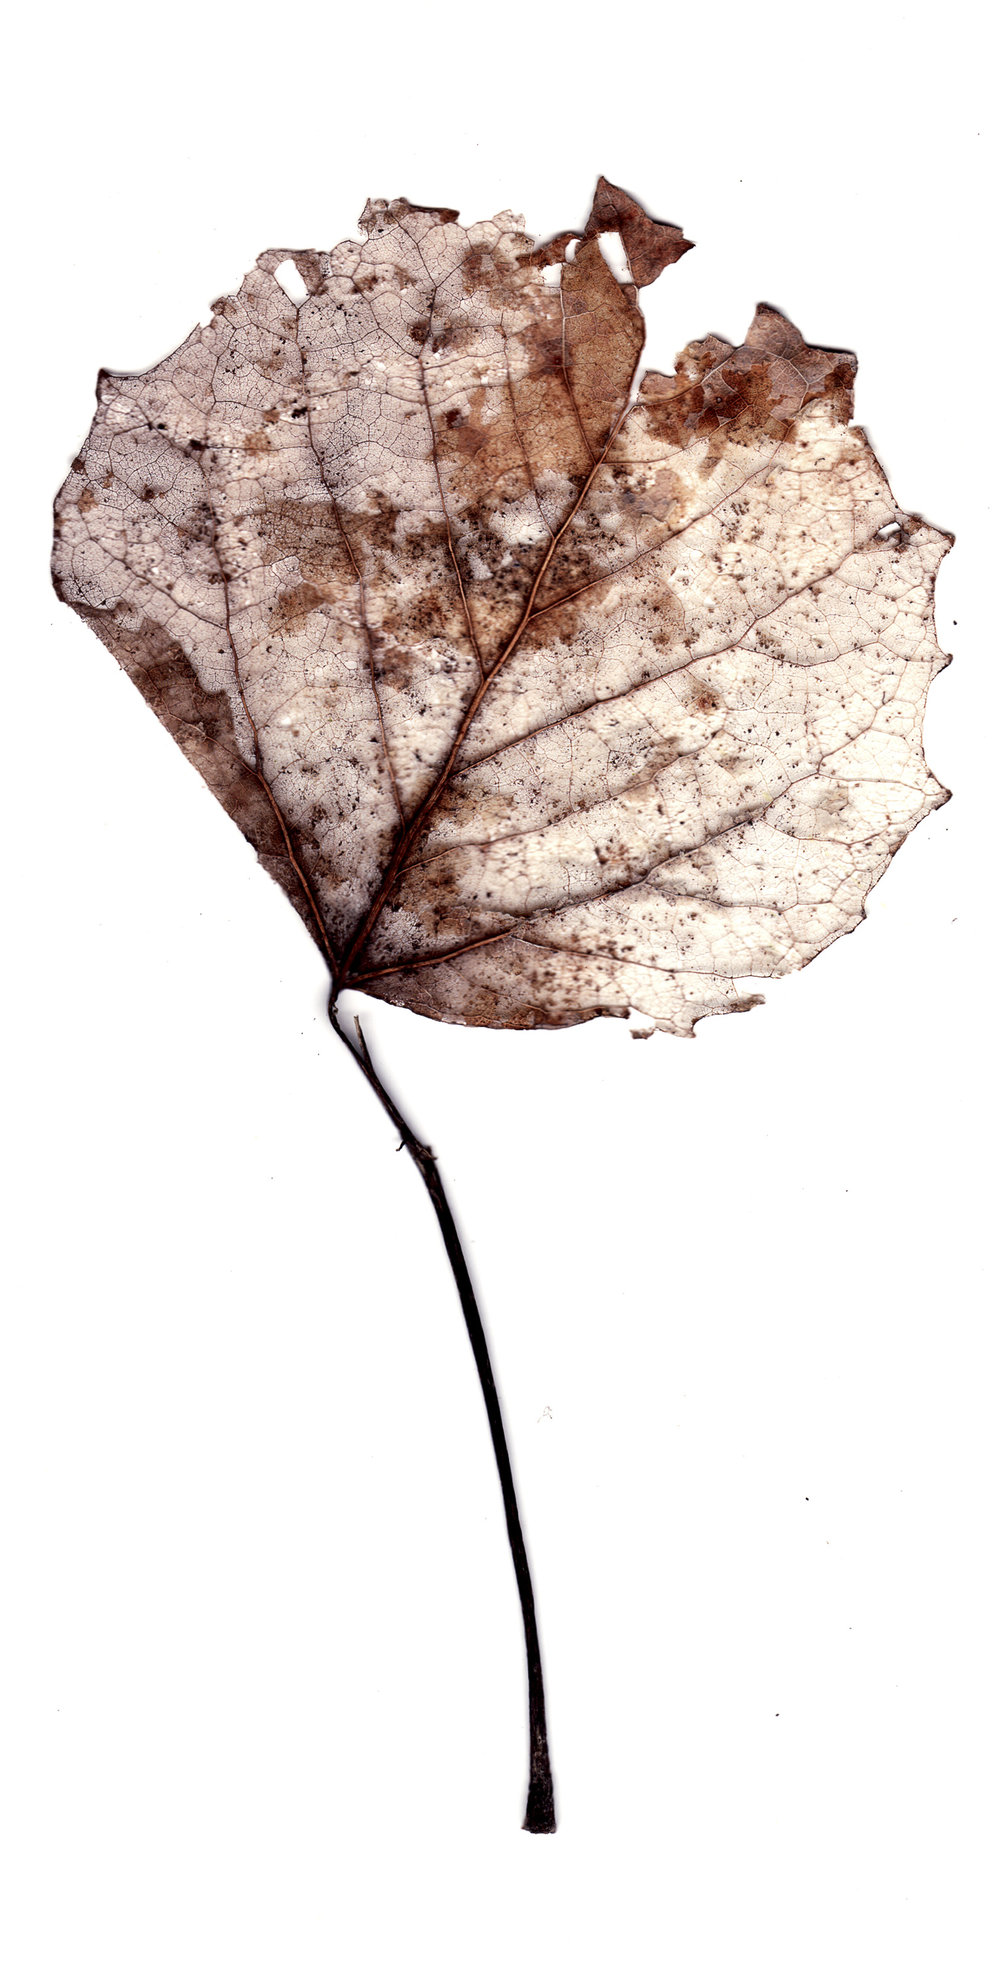 Collected Poems, Aspen Leaves0011  , Ink Jet print on Washi paper, 13x27 inches, 2007, ed. 3